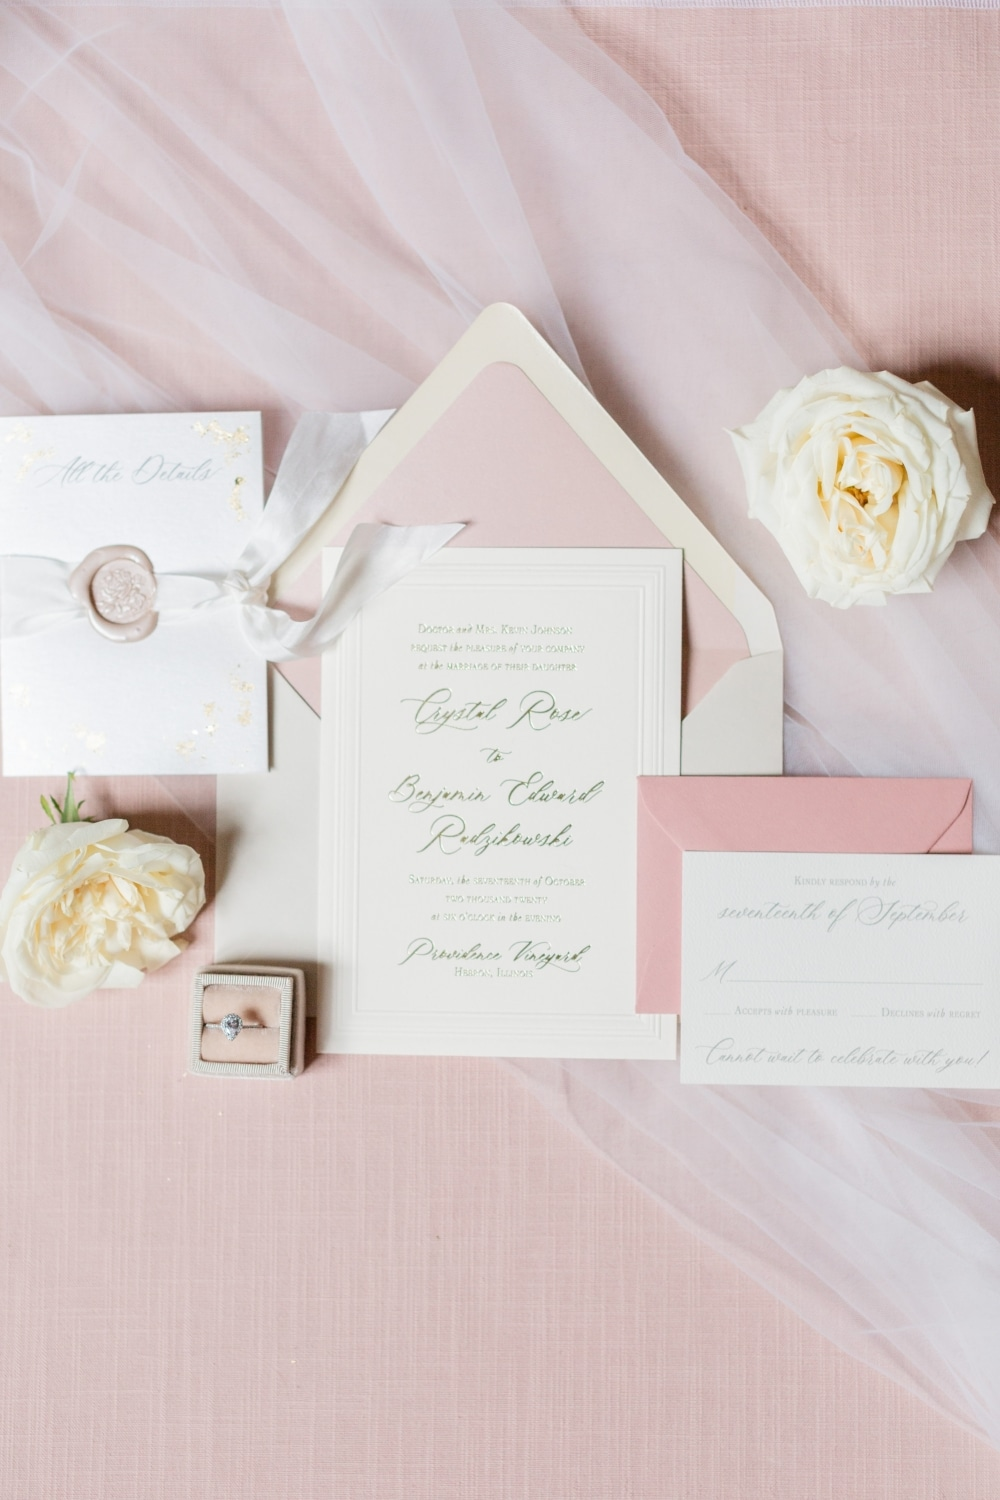 blusk pink invitation close up detail picture